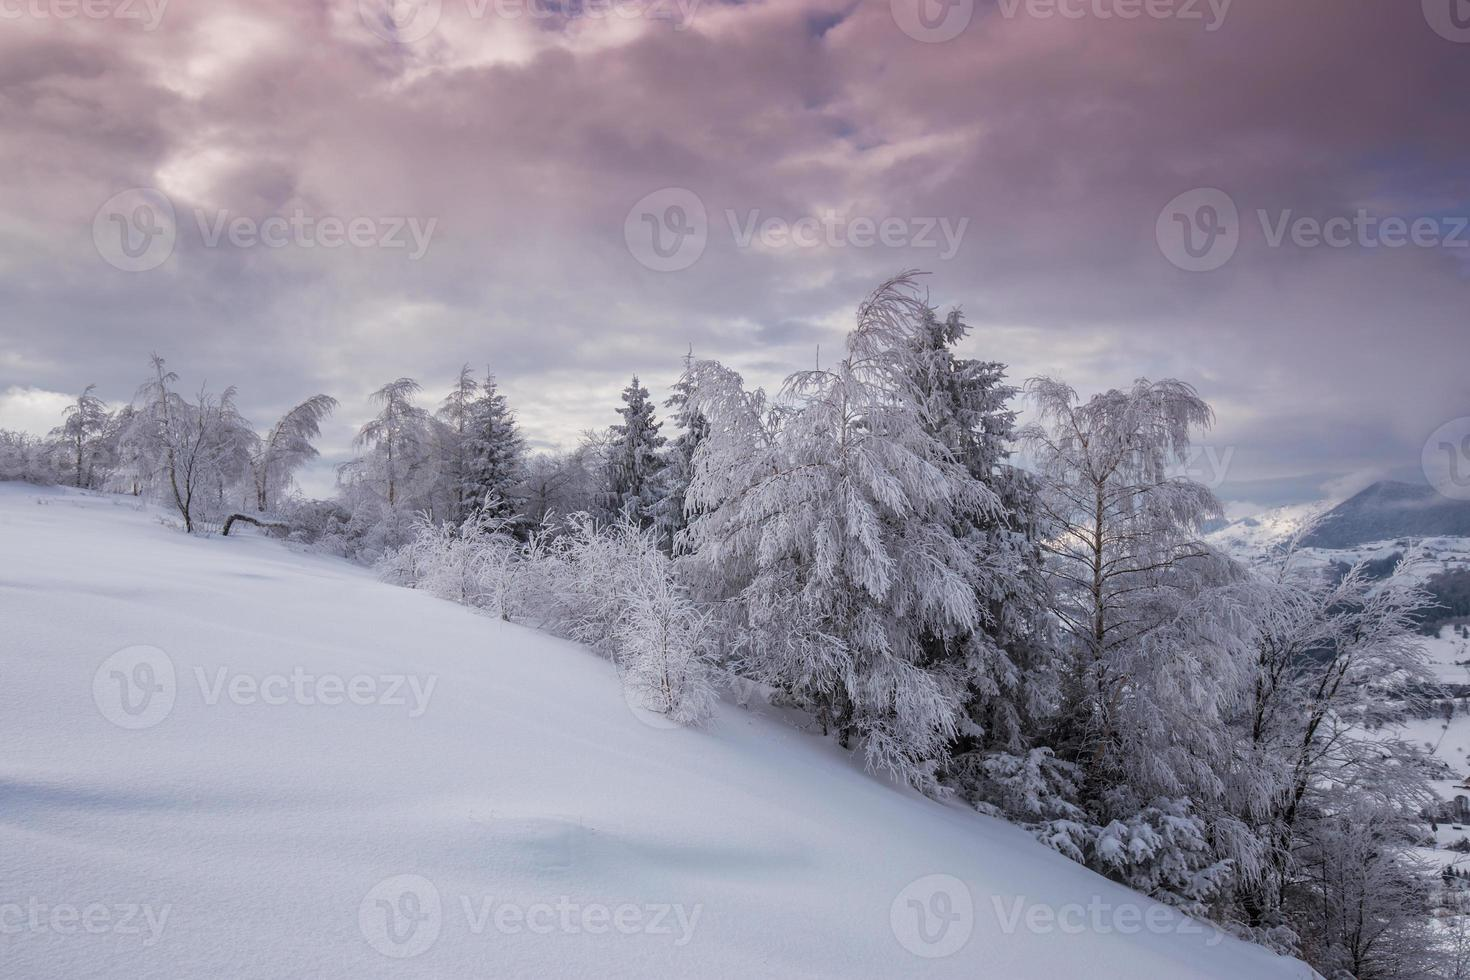 Winter scenery in the mountains photo